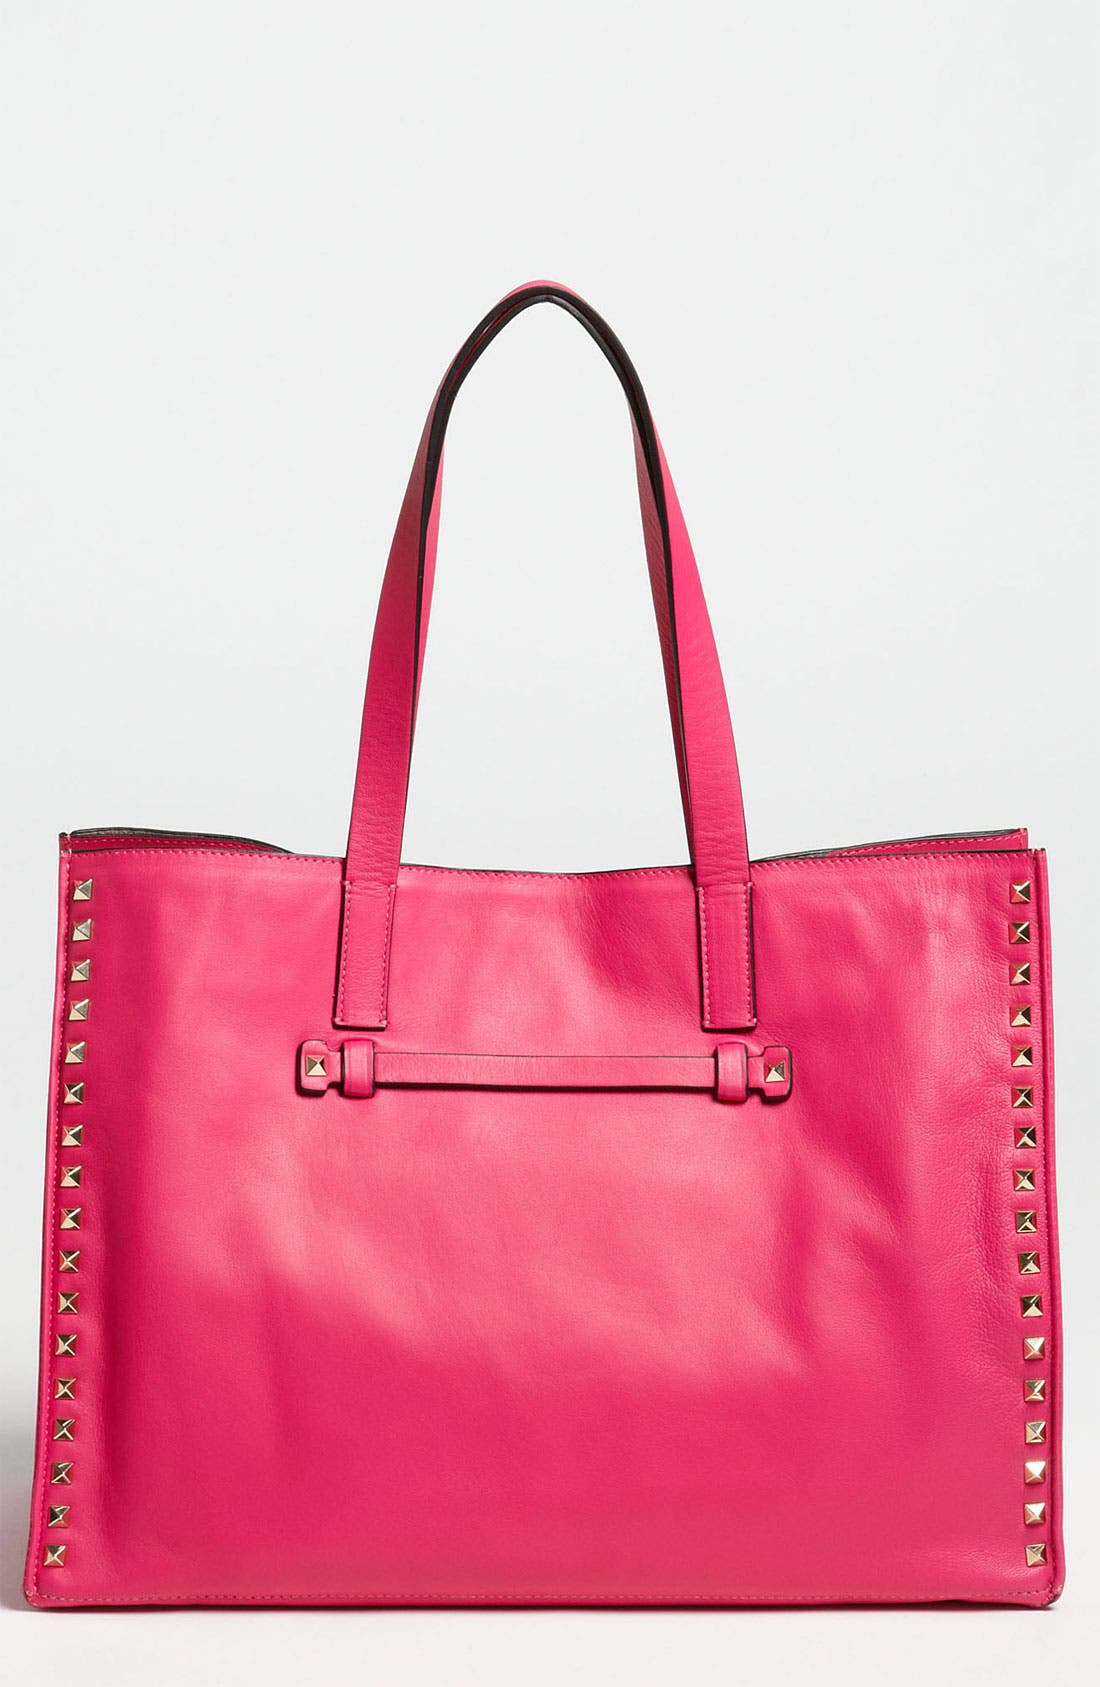 Main Image - Valentino 'Medium Rockstud' Leather Tote